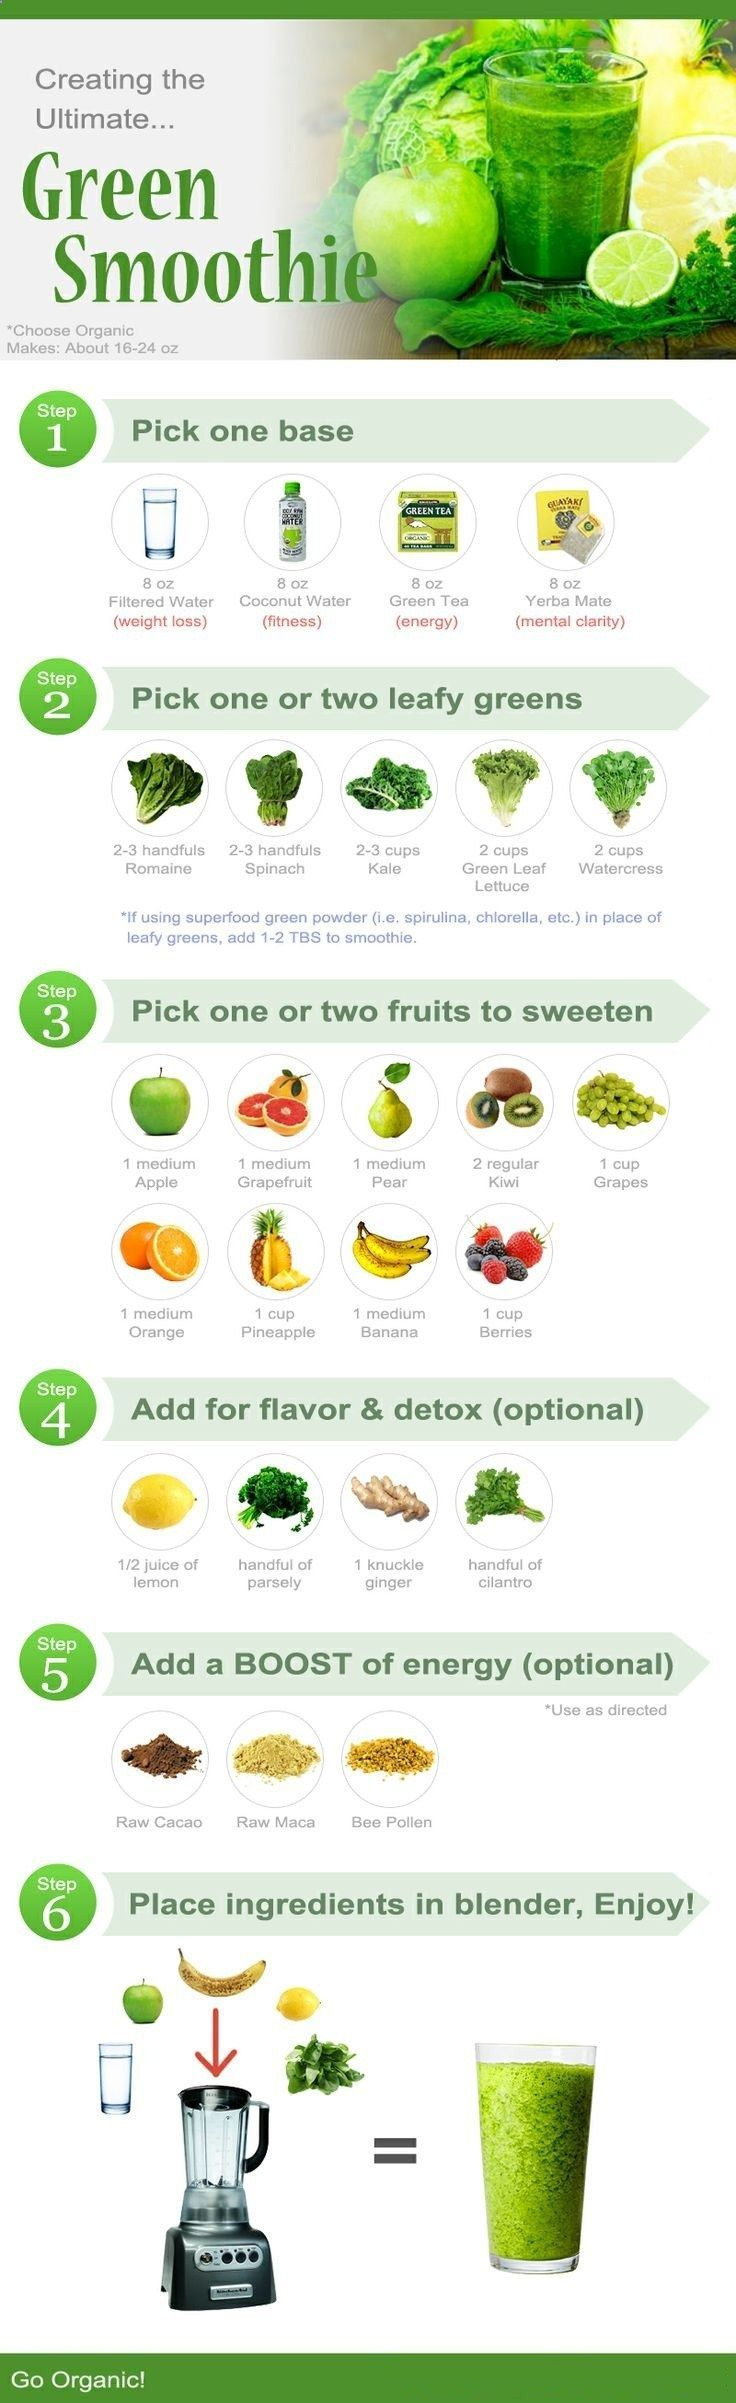 Looking for detox smoothies to boost your energy? Whether you need a cleanse or want to lose some weight, there's a detox smoothie recipe that you'll love!